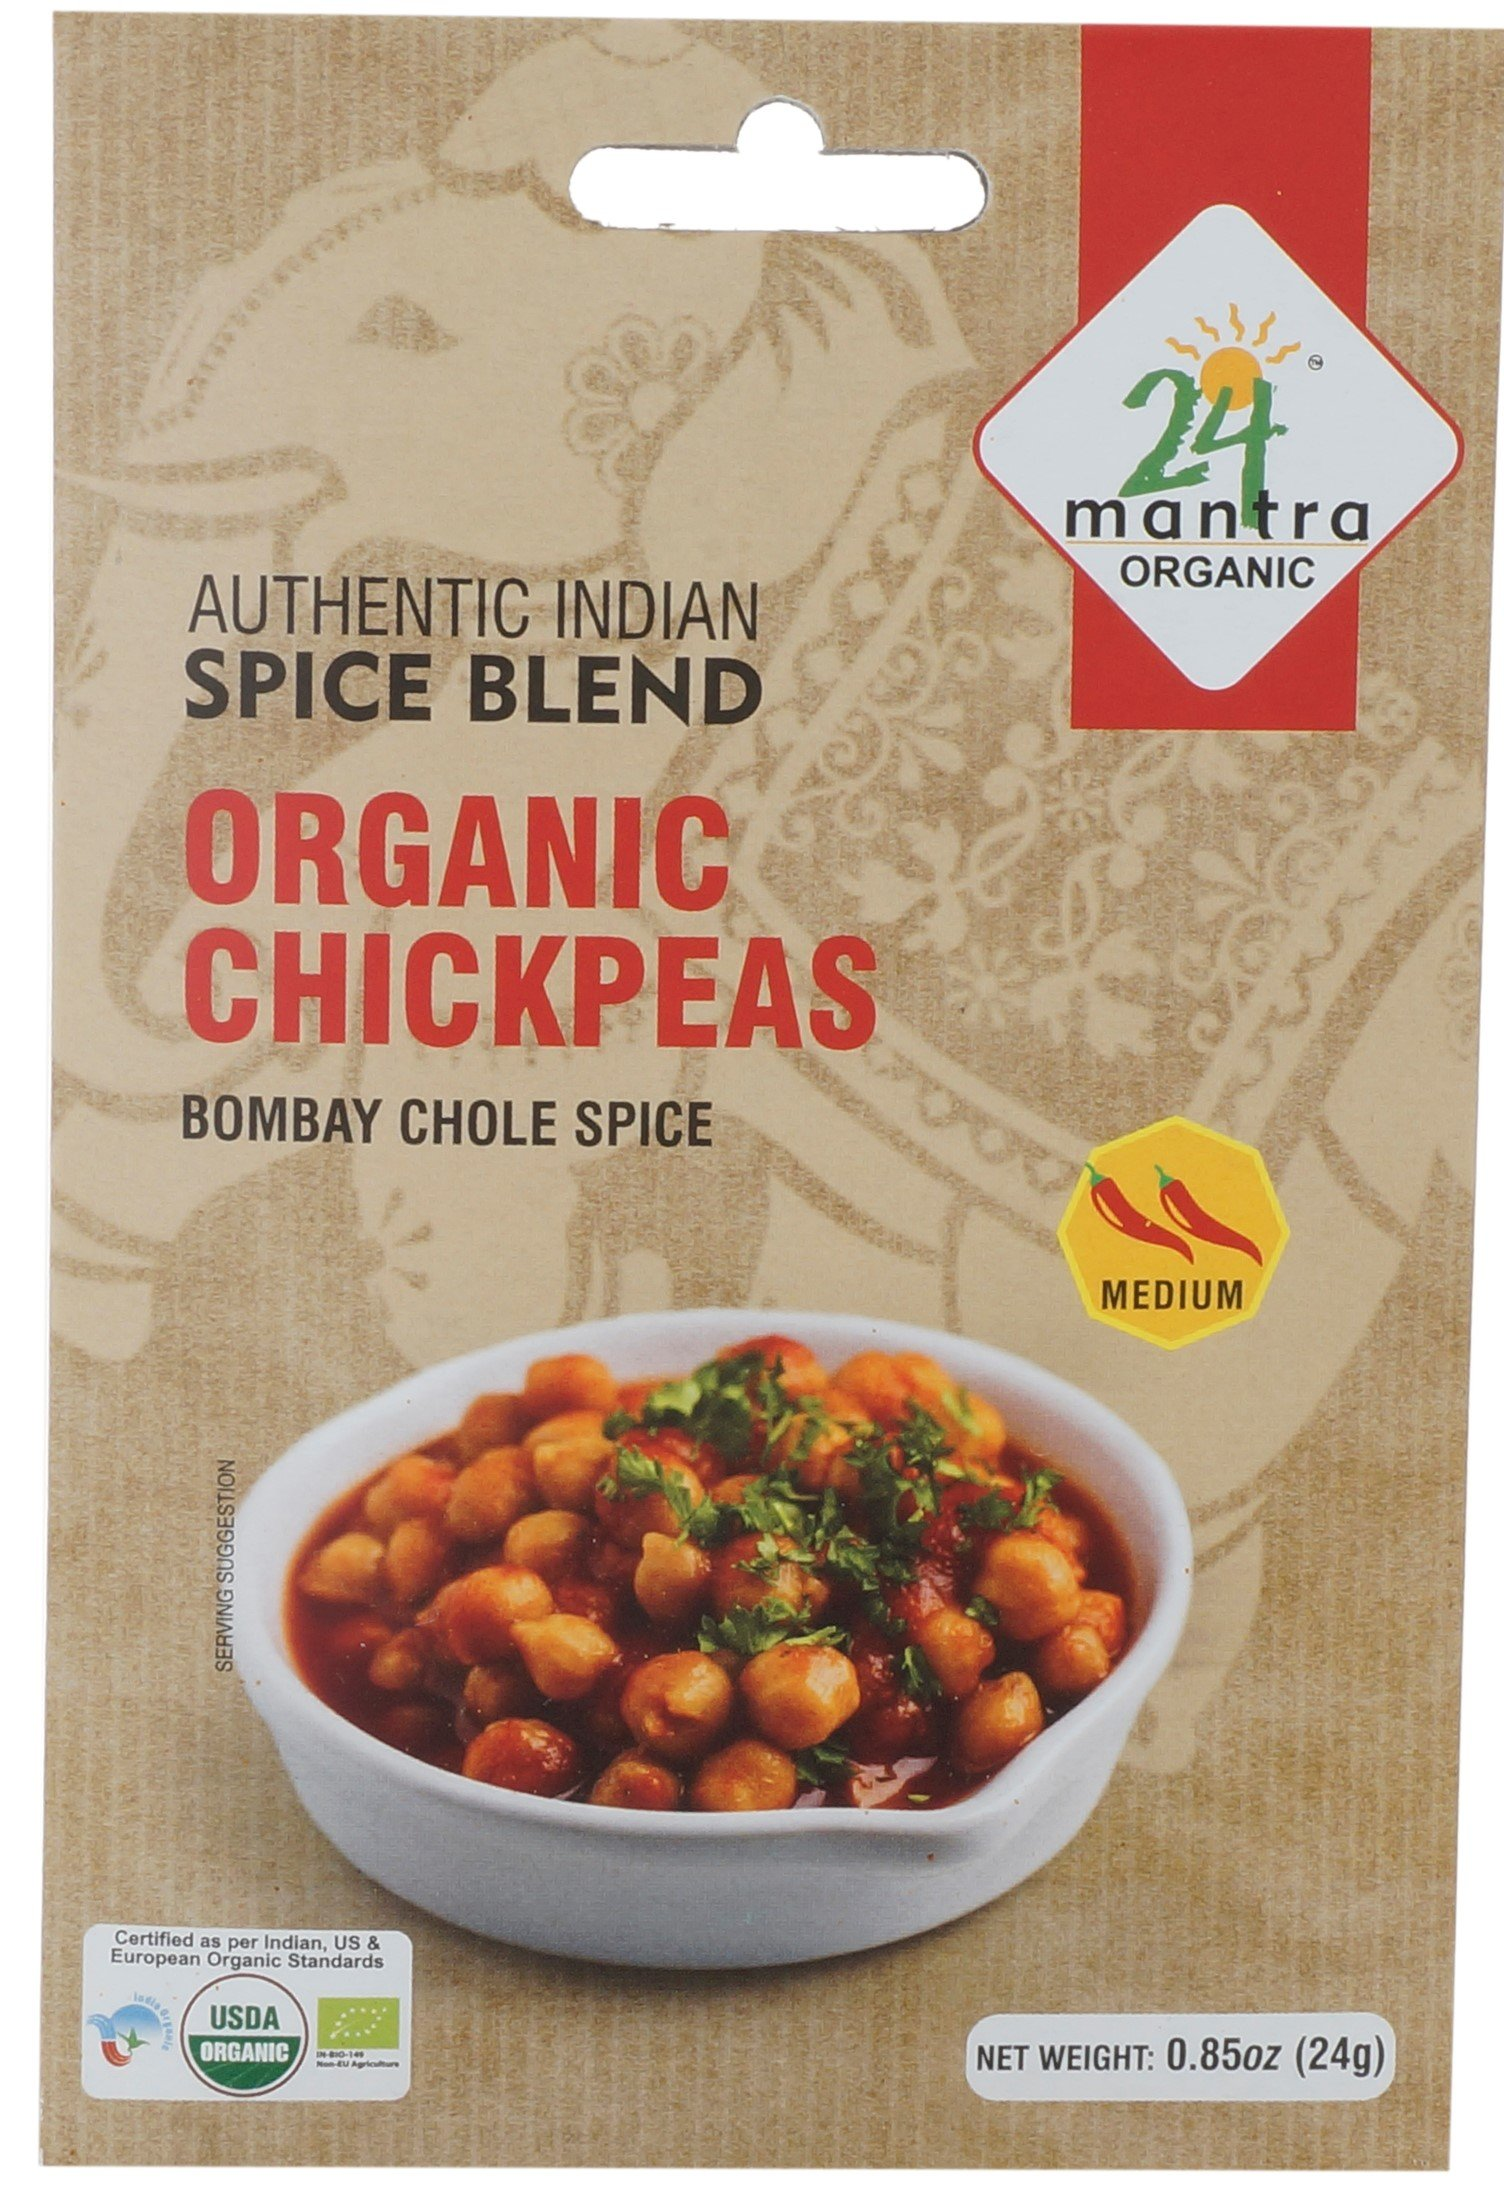 Organic Chickpeas Curry - Bombay Chole Spice - 24 Gms X 4 Packs